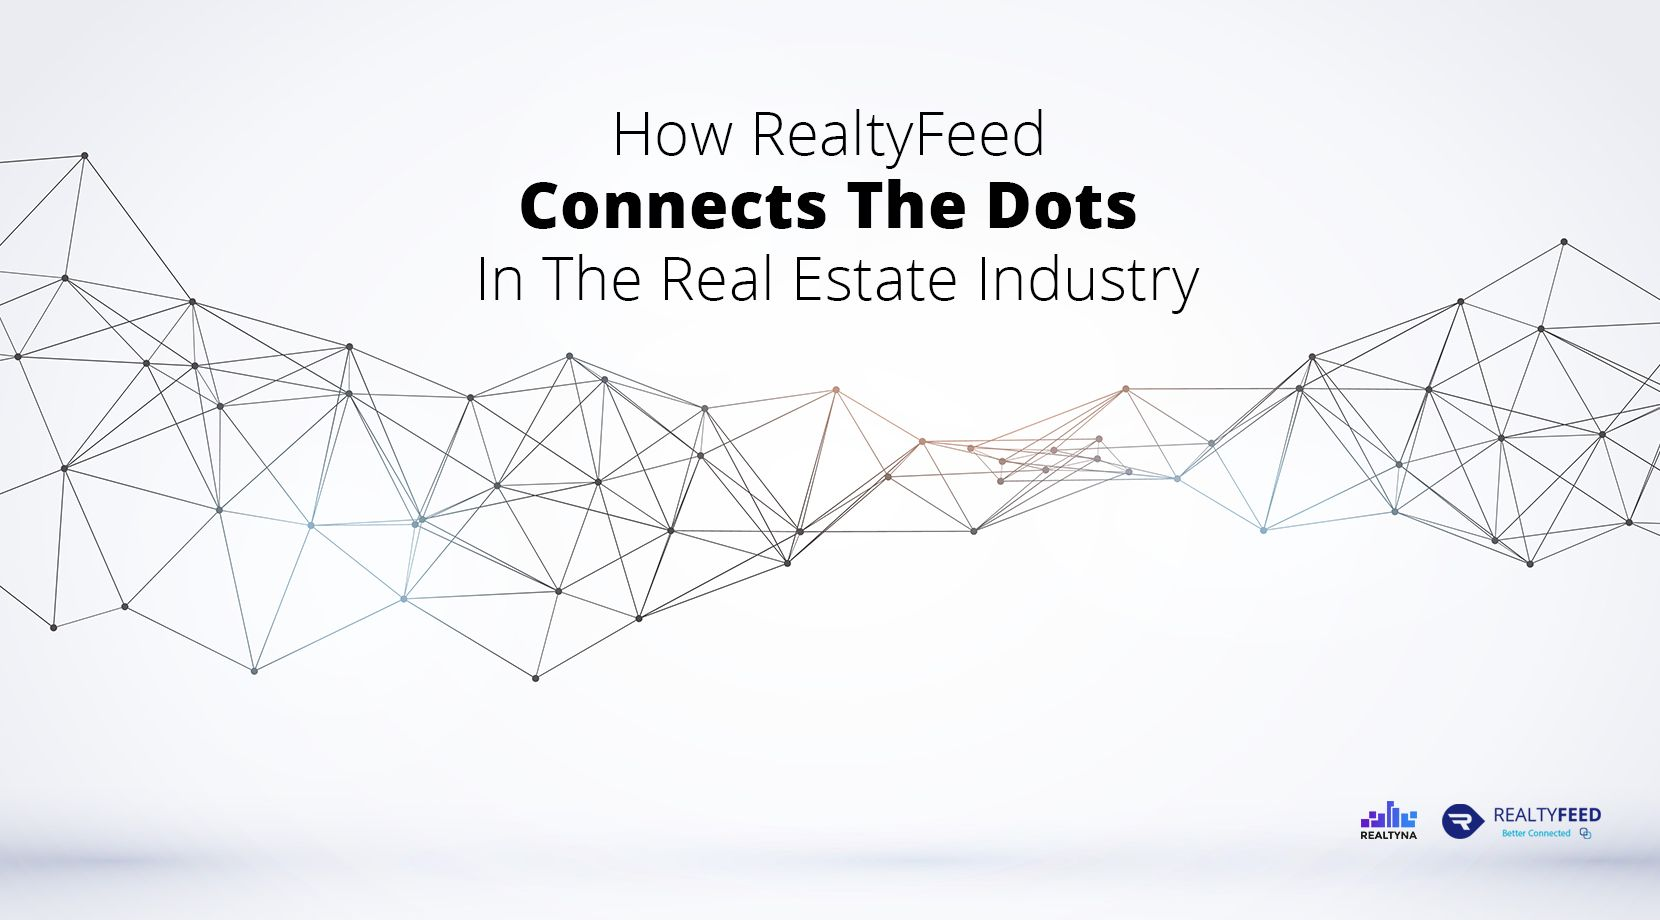 How RealtyFeed Connects The Dots Of The Real Estate Industry